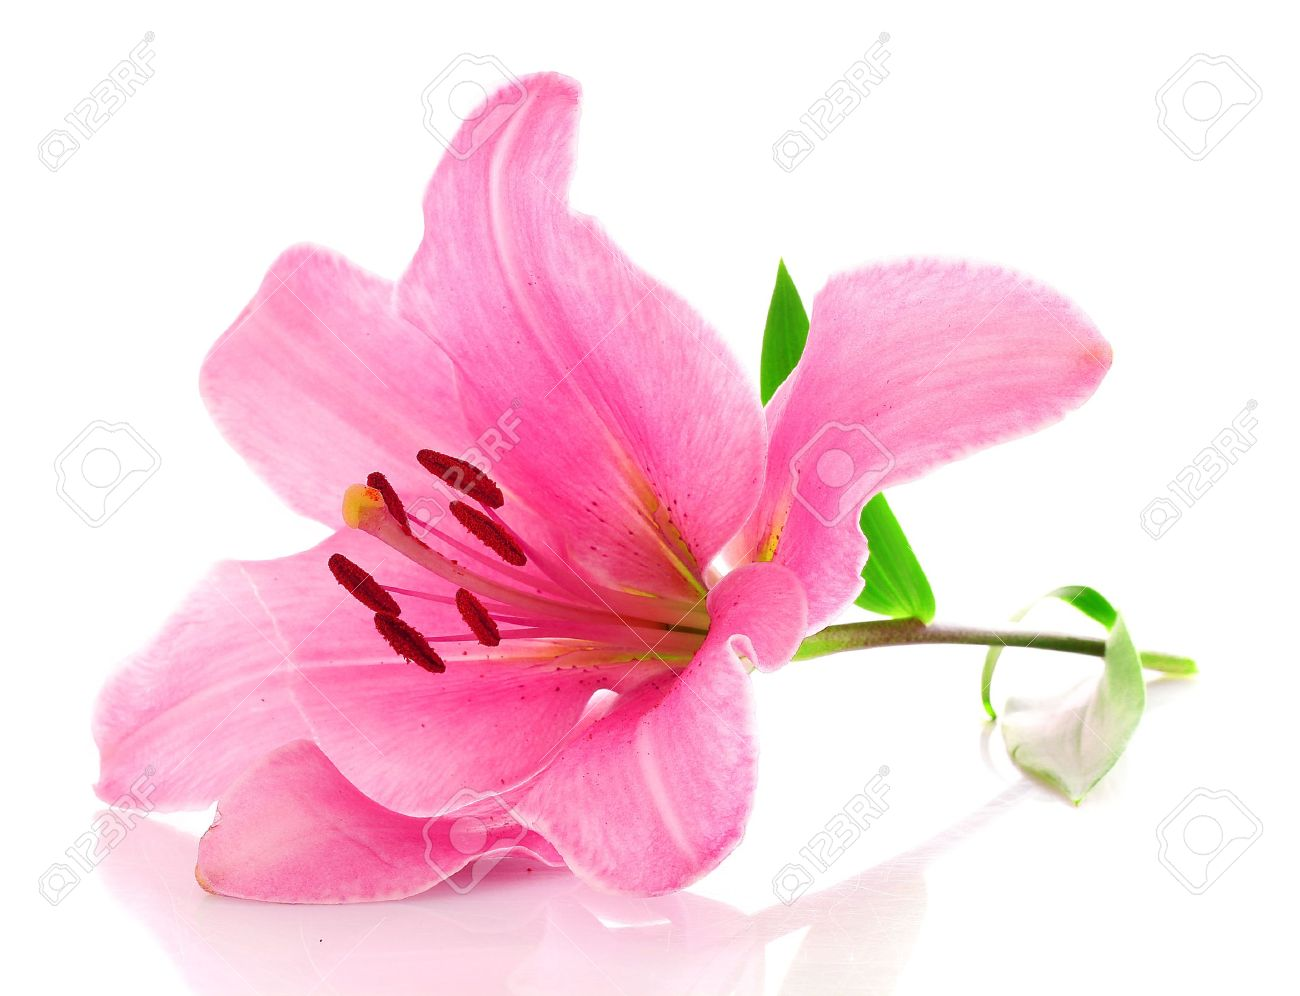 lily flower stock photos  pictures. royalty free lily flower, Beautiful flower